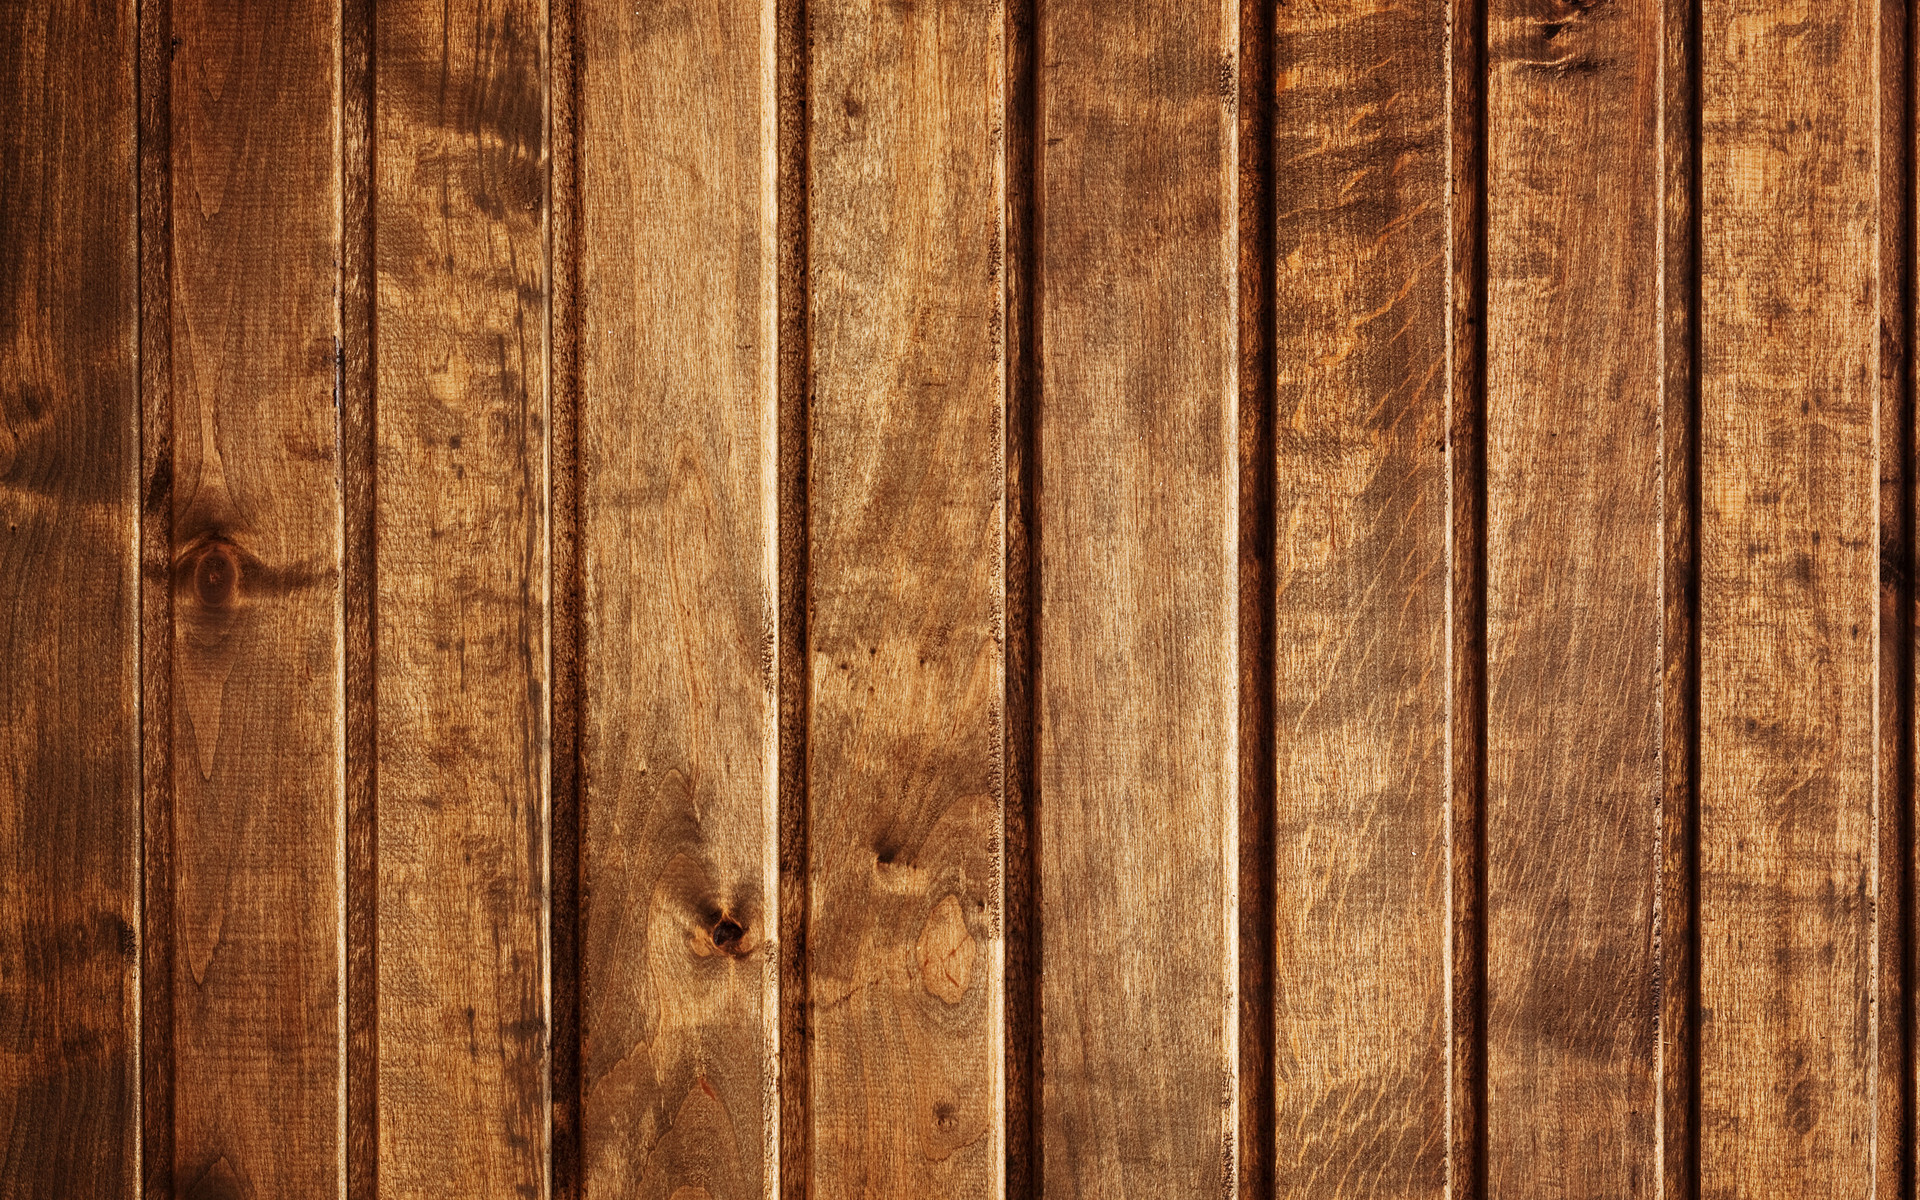 1920x1200 30 Amazing Free Wood Texture Backgrounds | Tech-Lovers l Web .